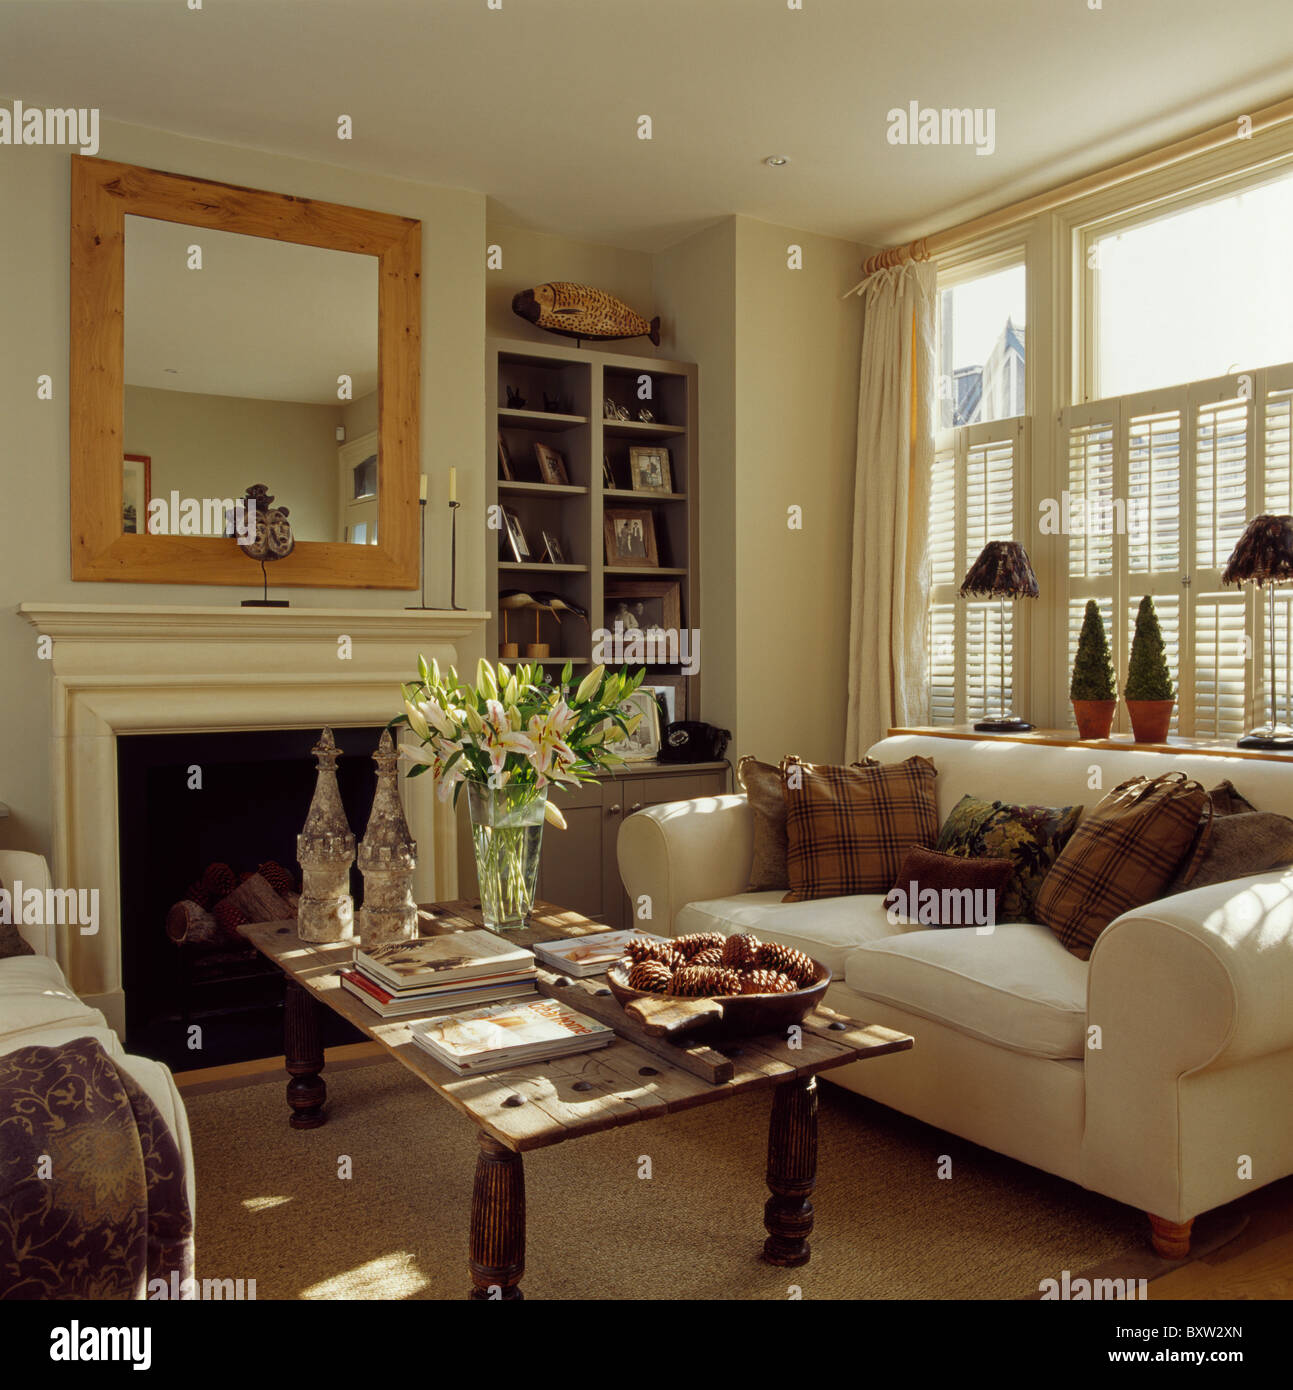 Ethan Allen Townhouse Coffee Table: Living Rooms Cream Sofas In Stock Photos & Living Rooms